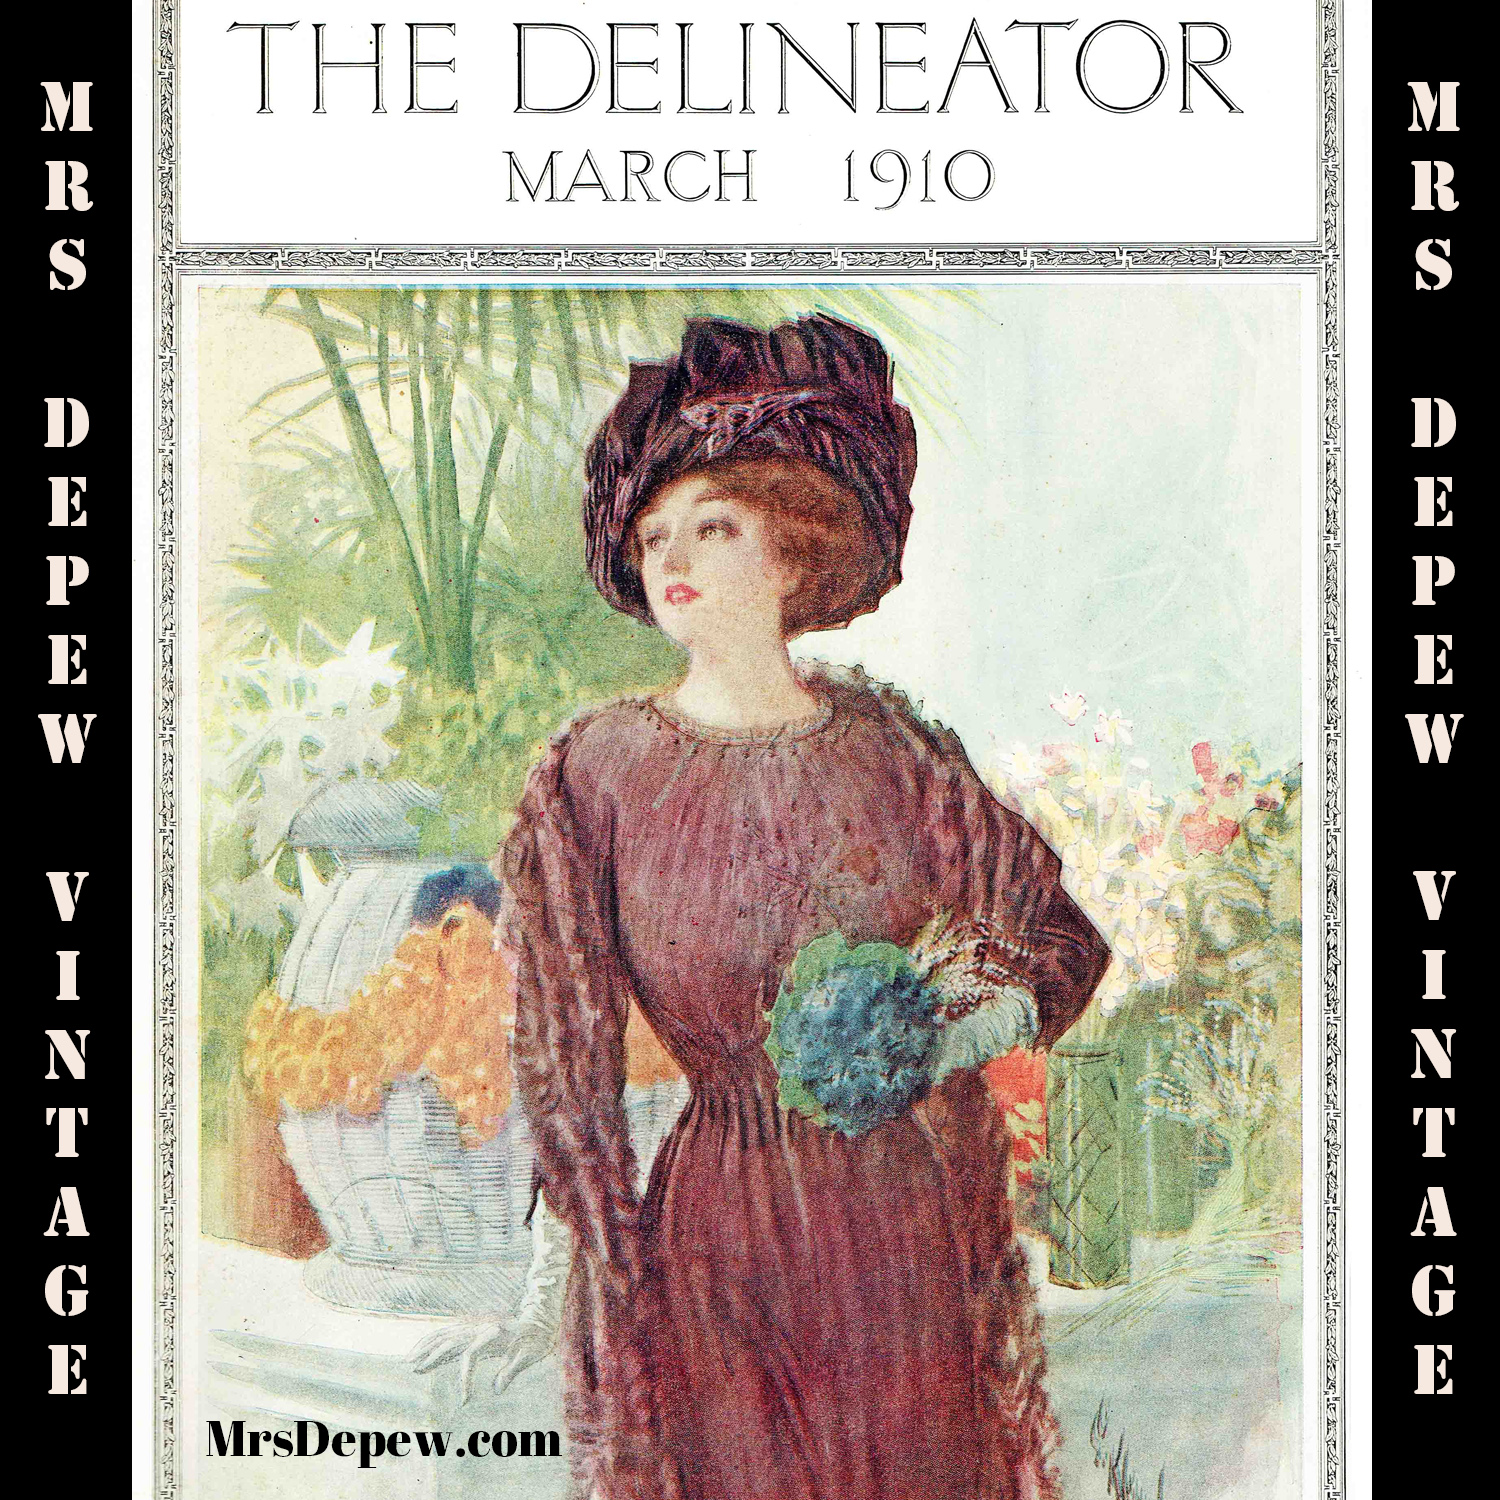 The Delineator March 1910